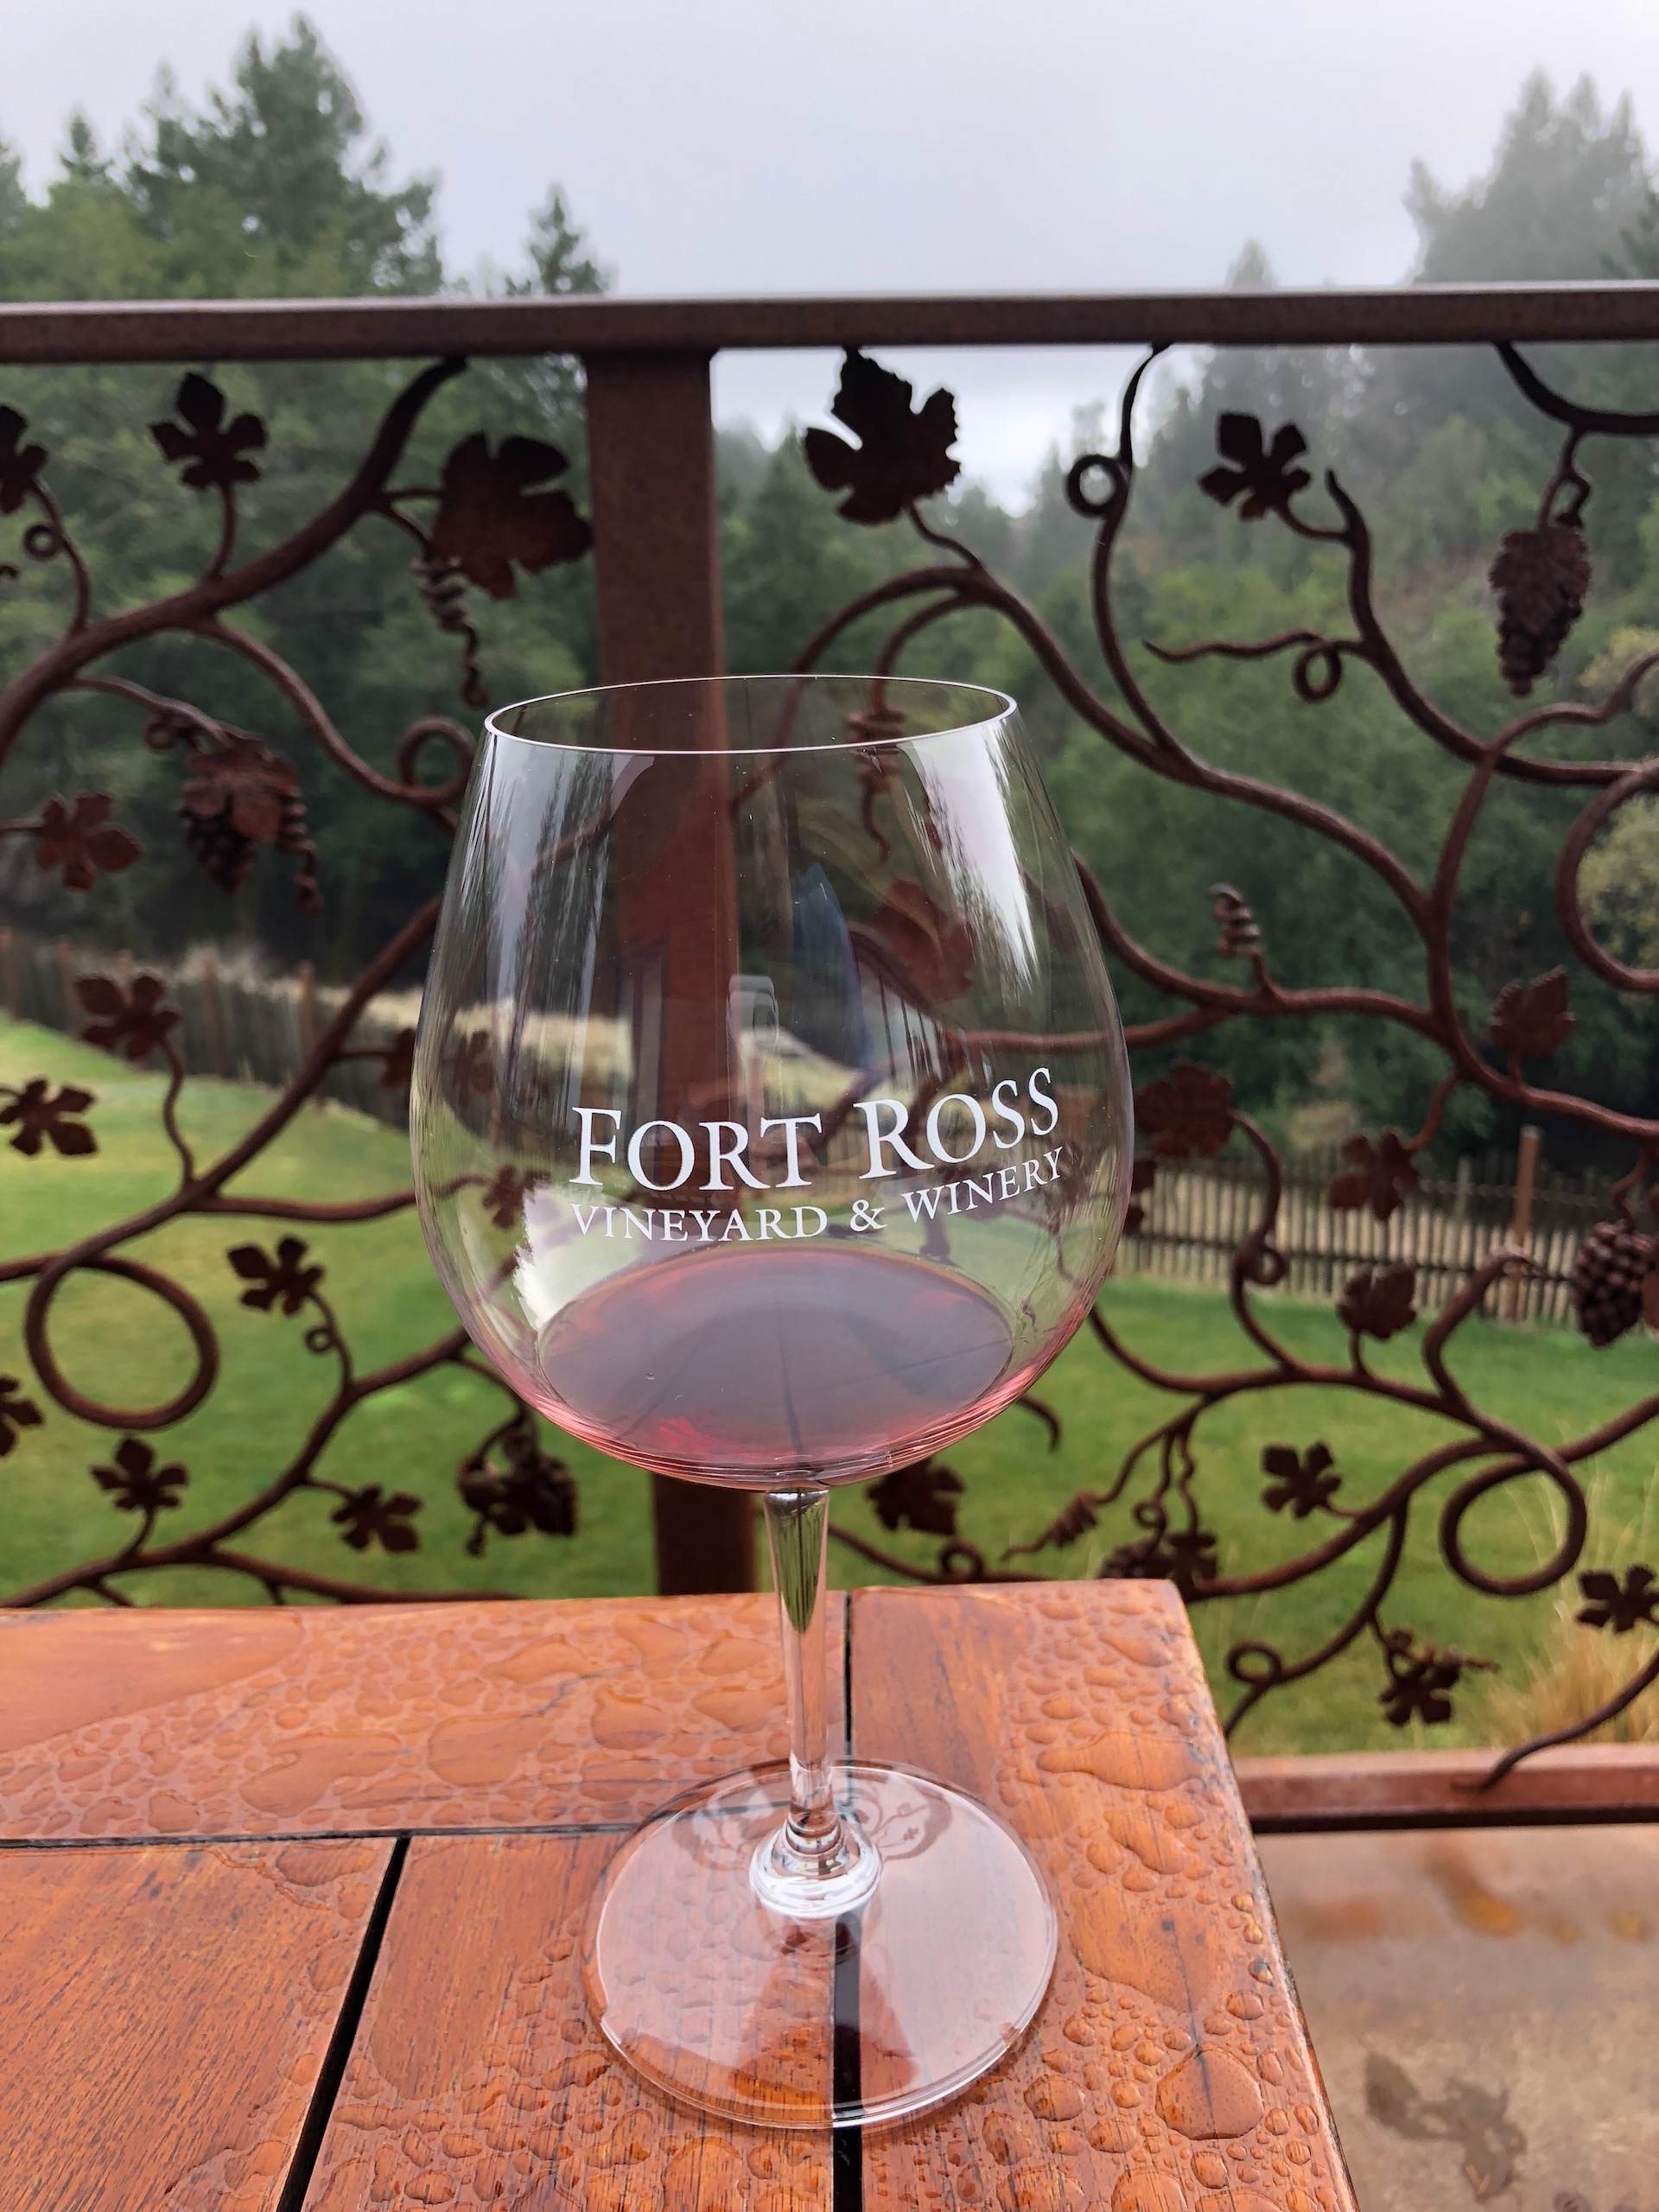 Fort Ross Vineyard & Winery in the far reaches of West Sonoma County